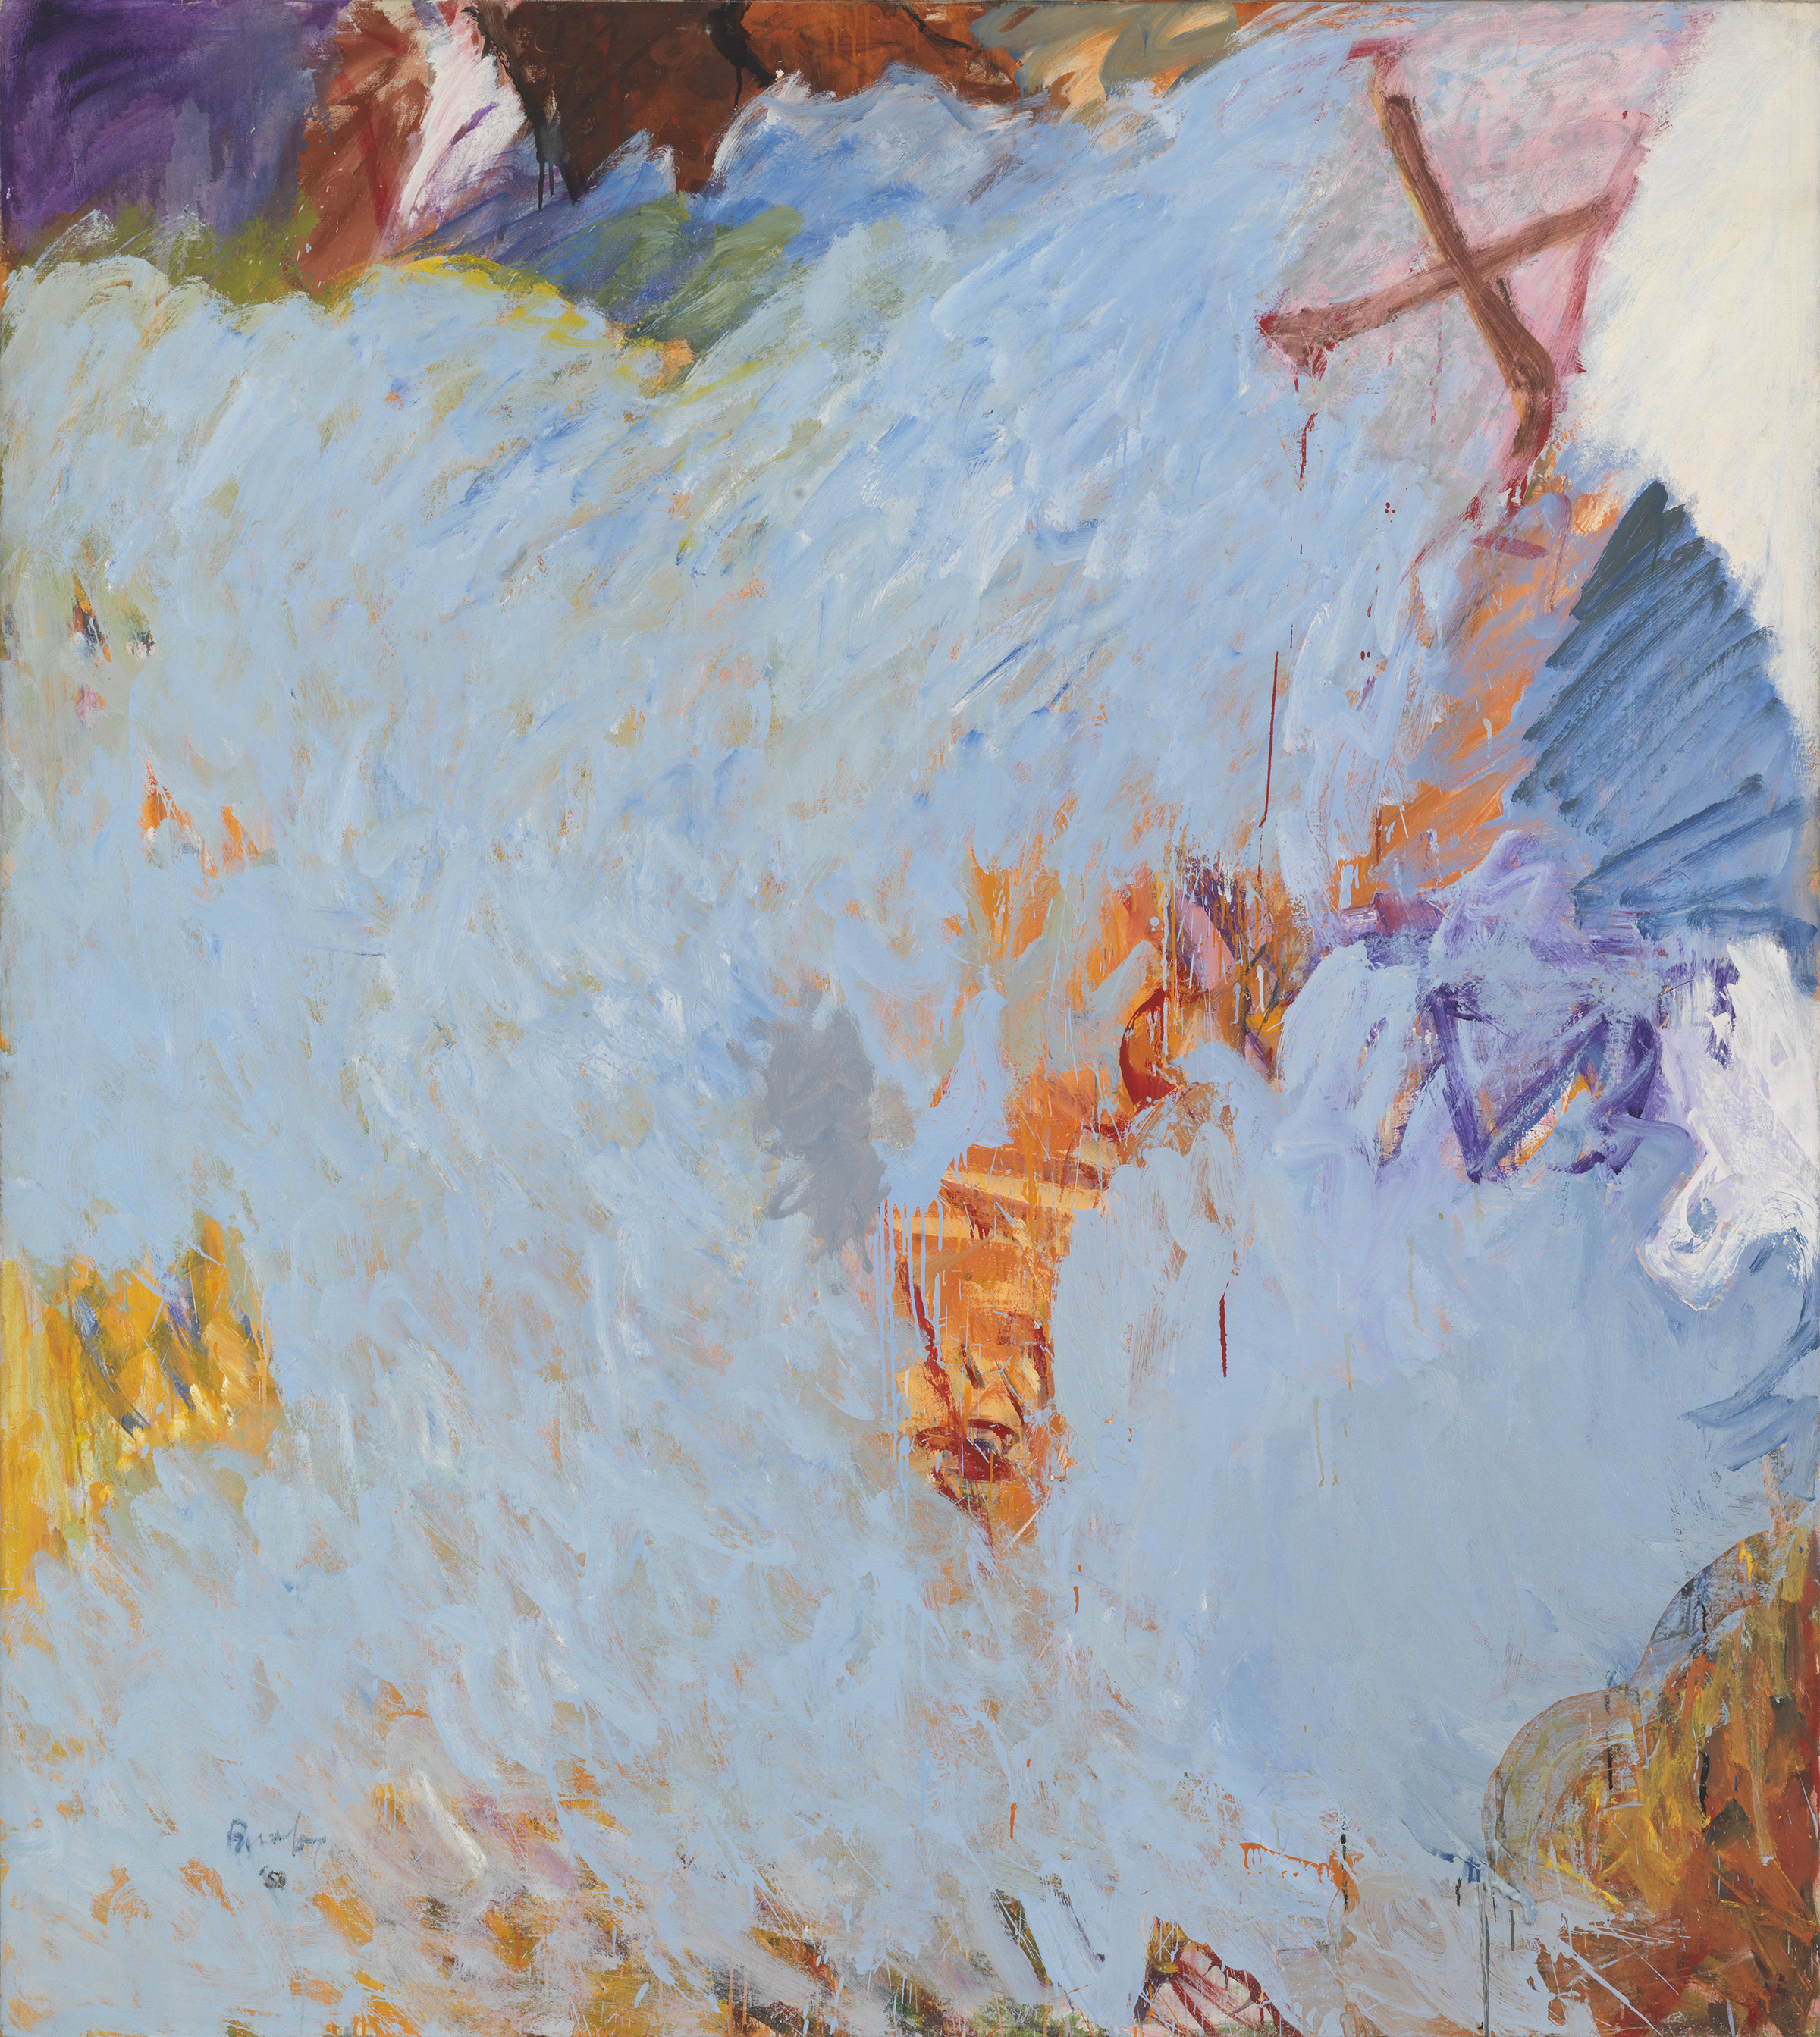 Pat Passlof  Stove , 1959 Oil on linen 77x 69 inches